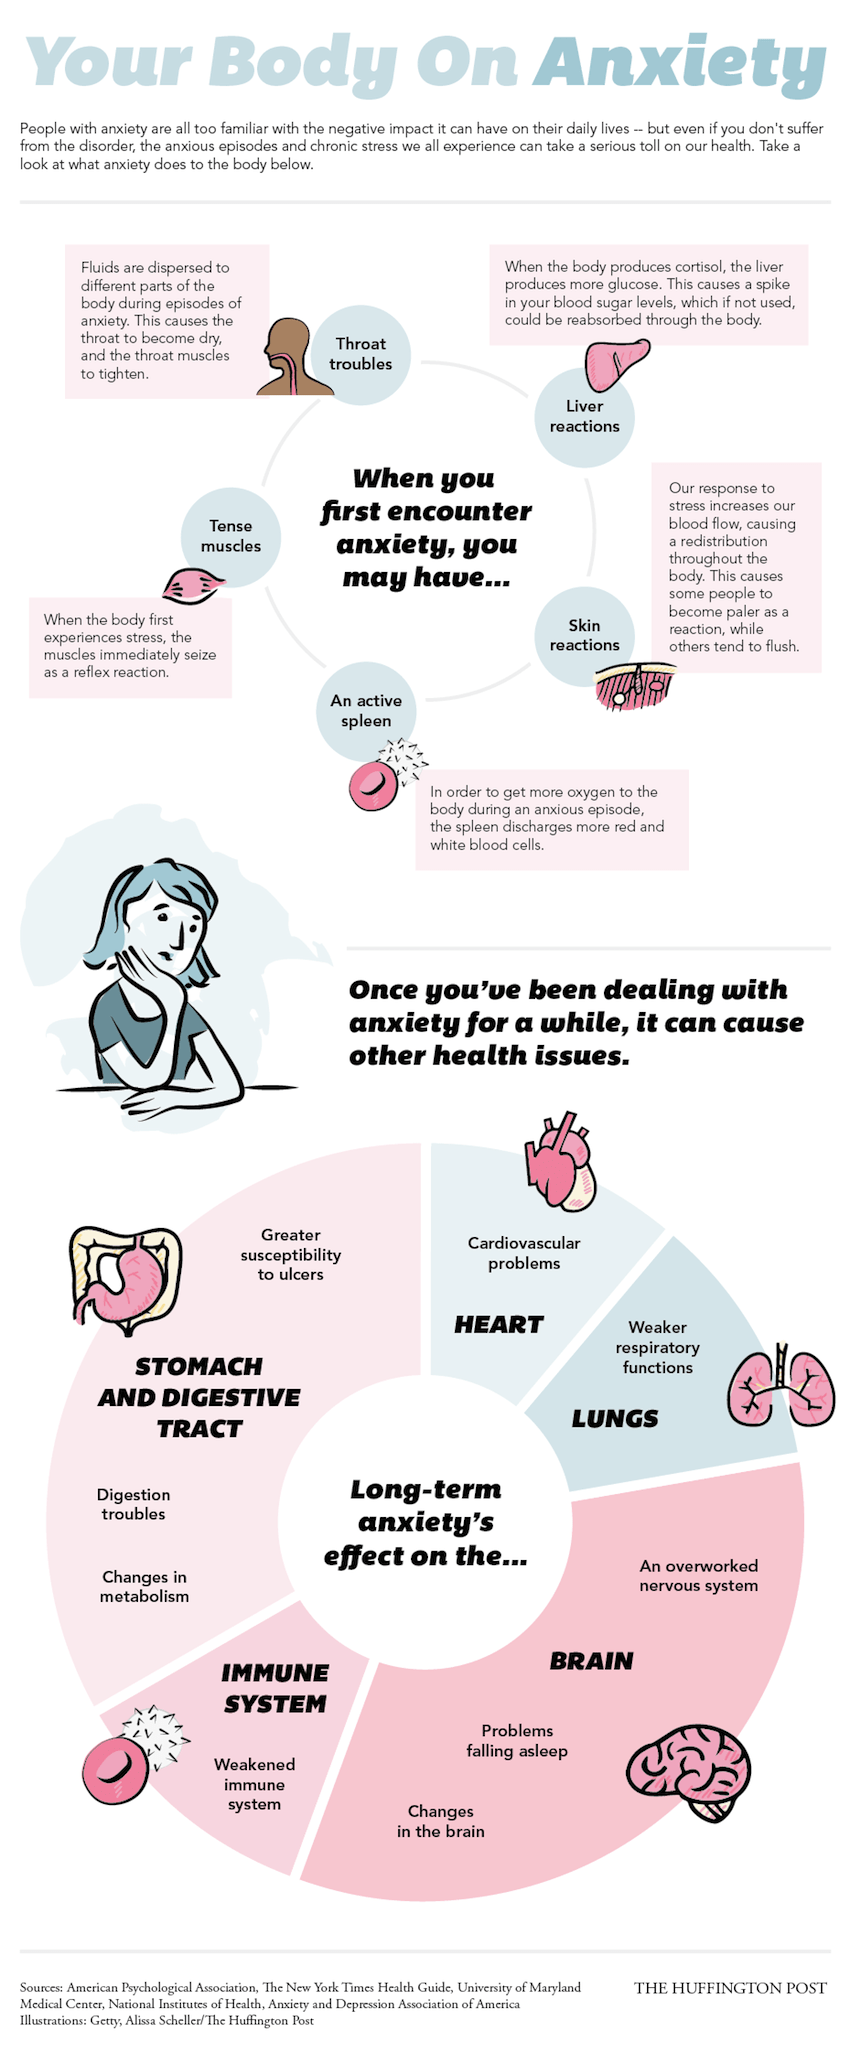 14 Side Effects Of Anxiety Infographic